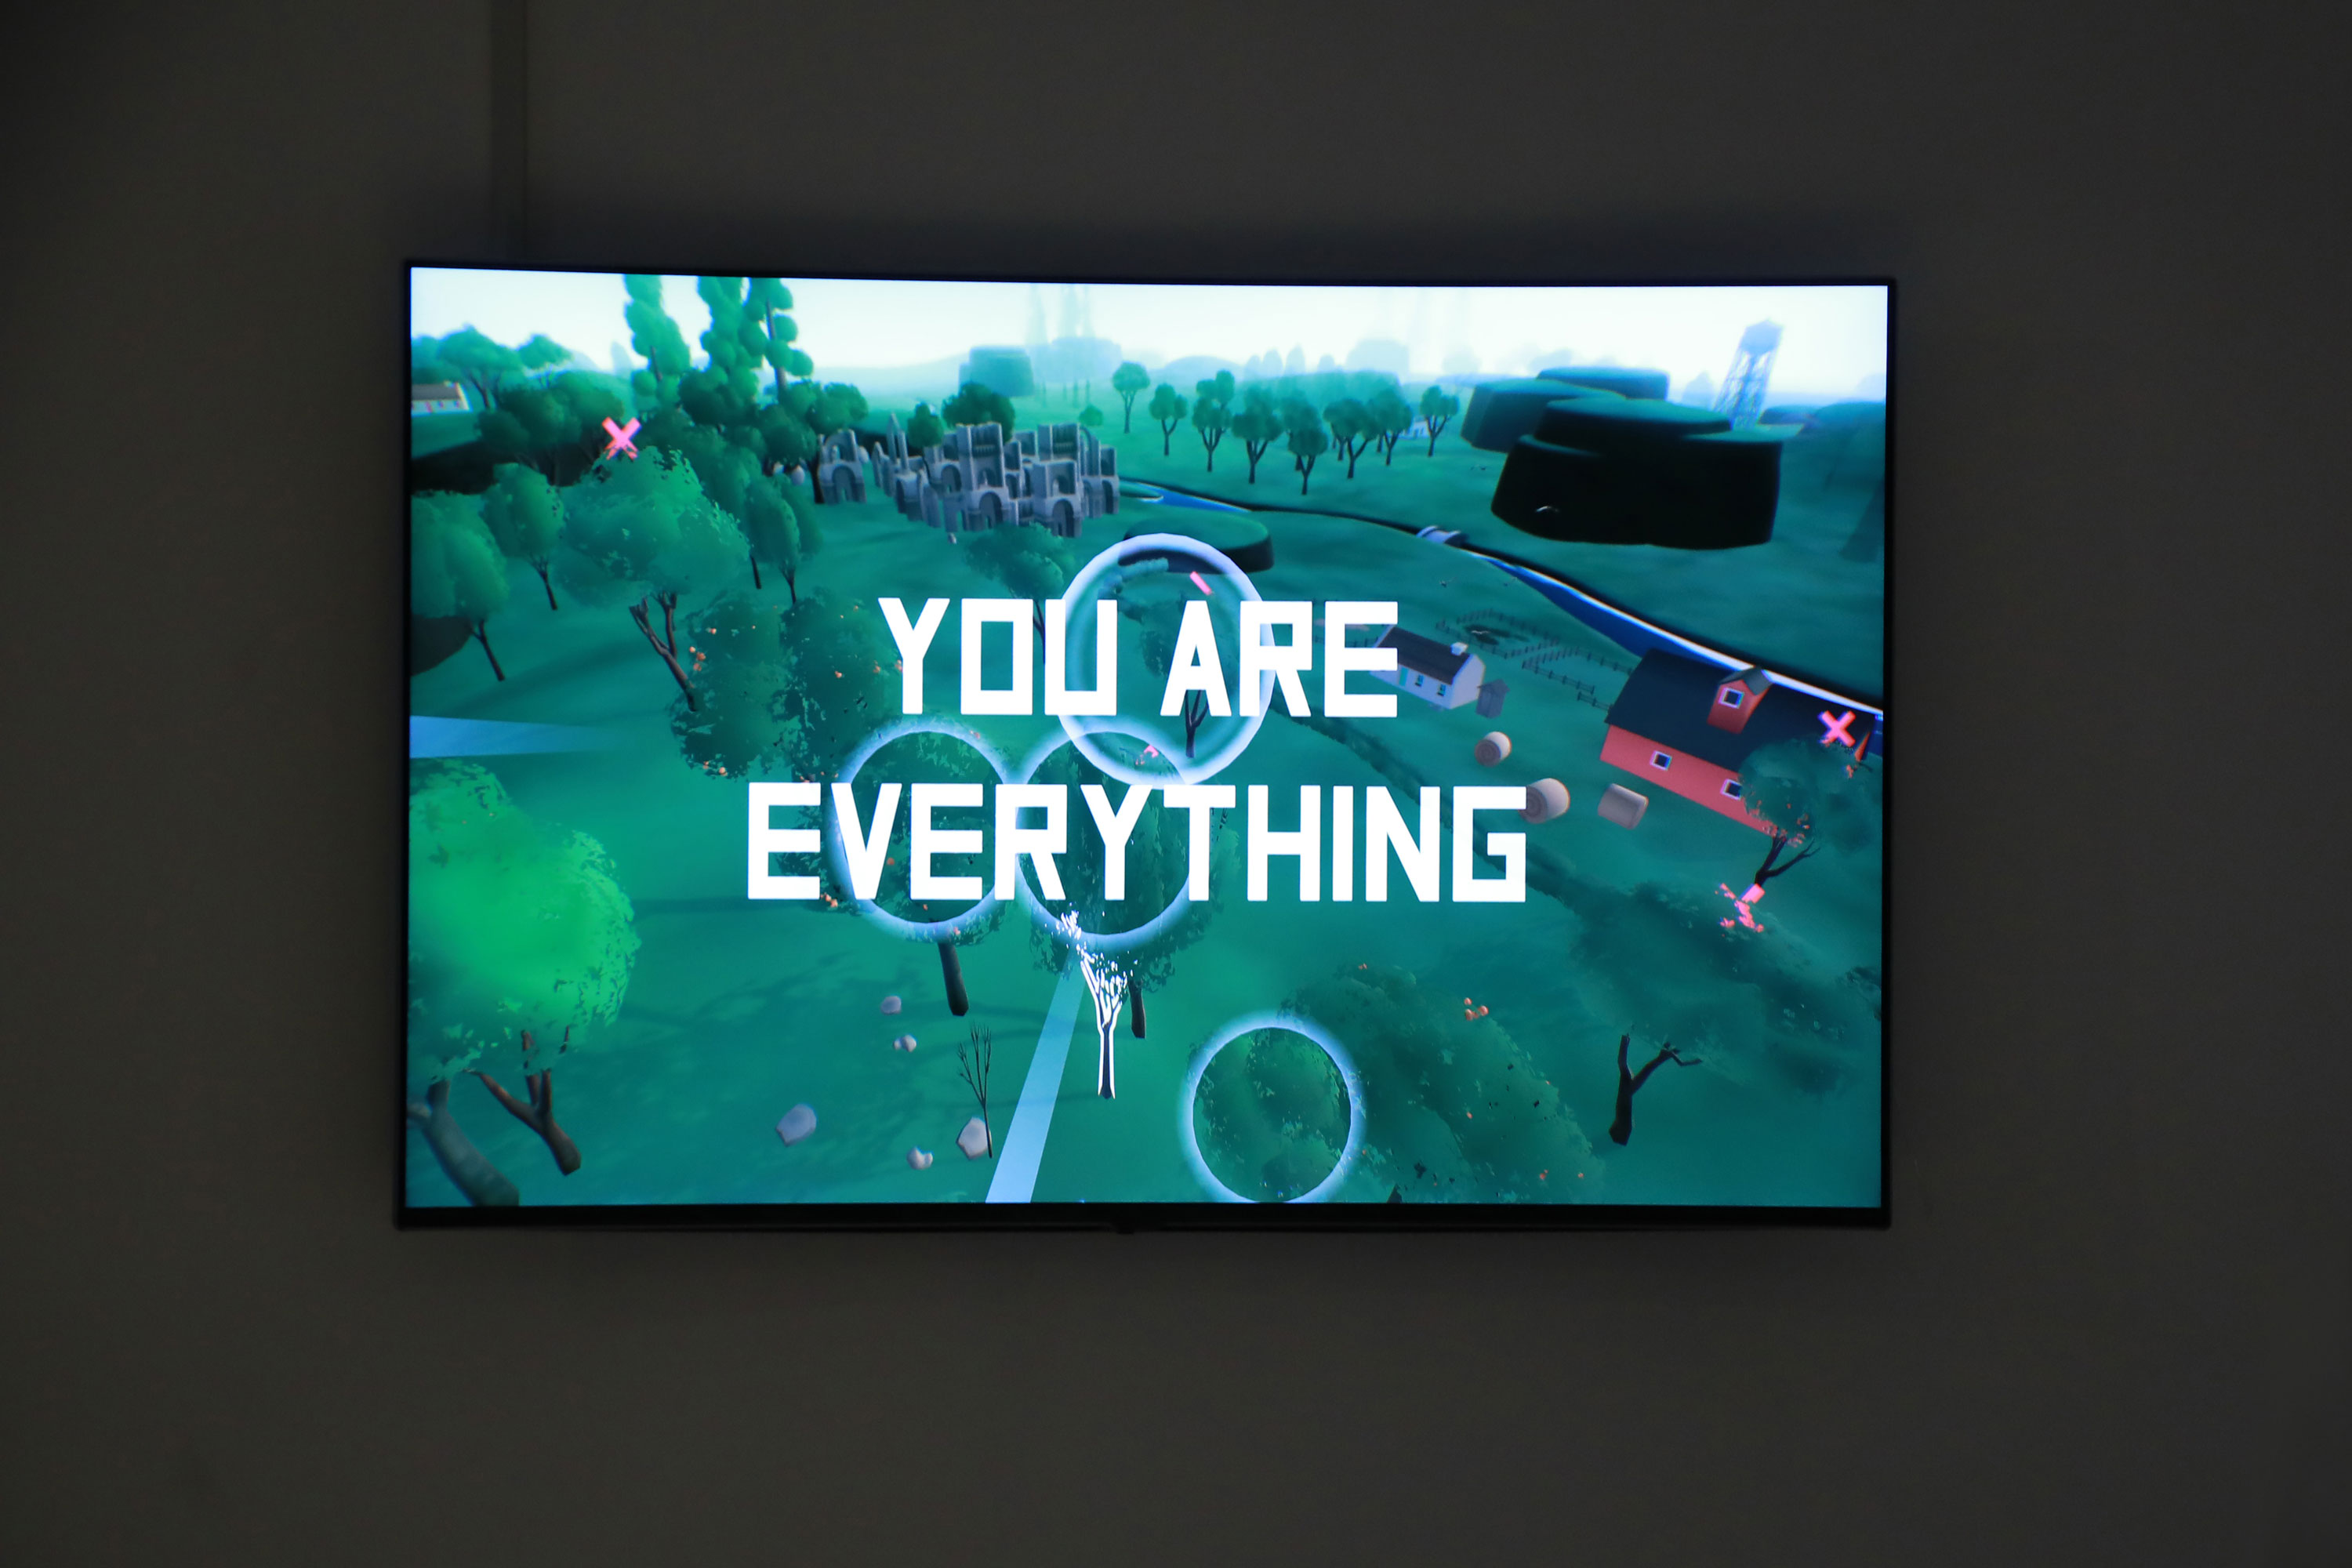 Everything by David OReilly (Ireland)